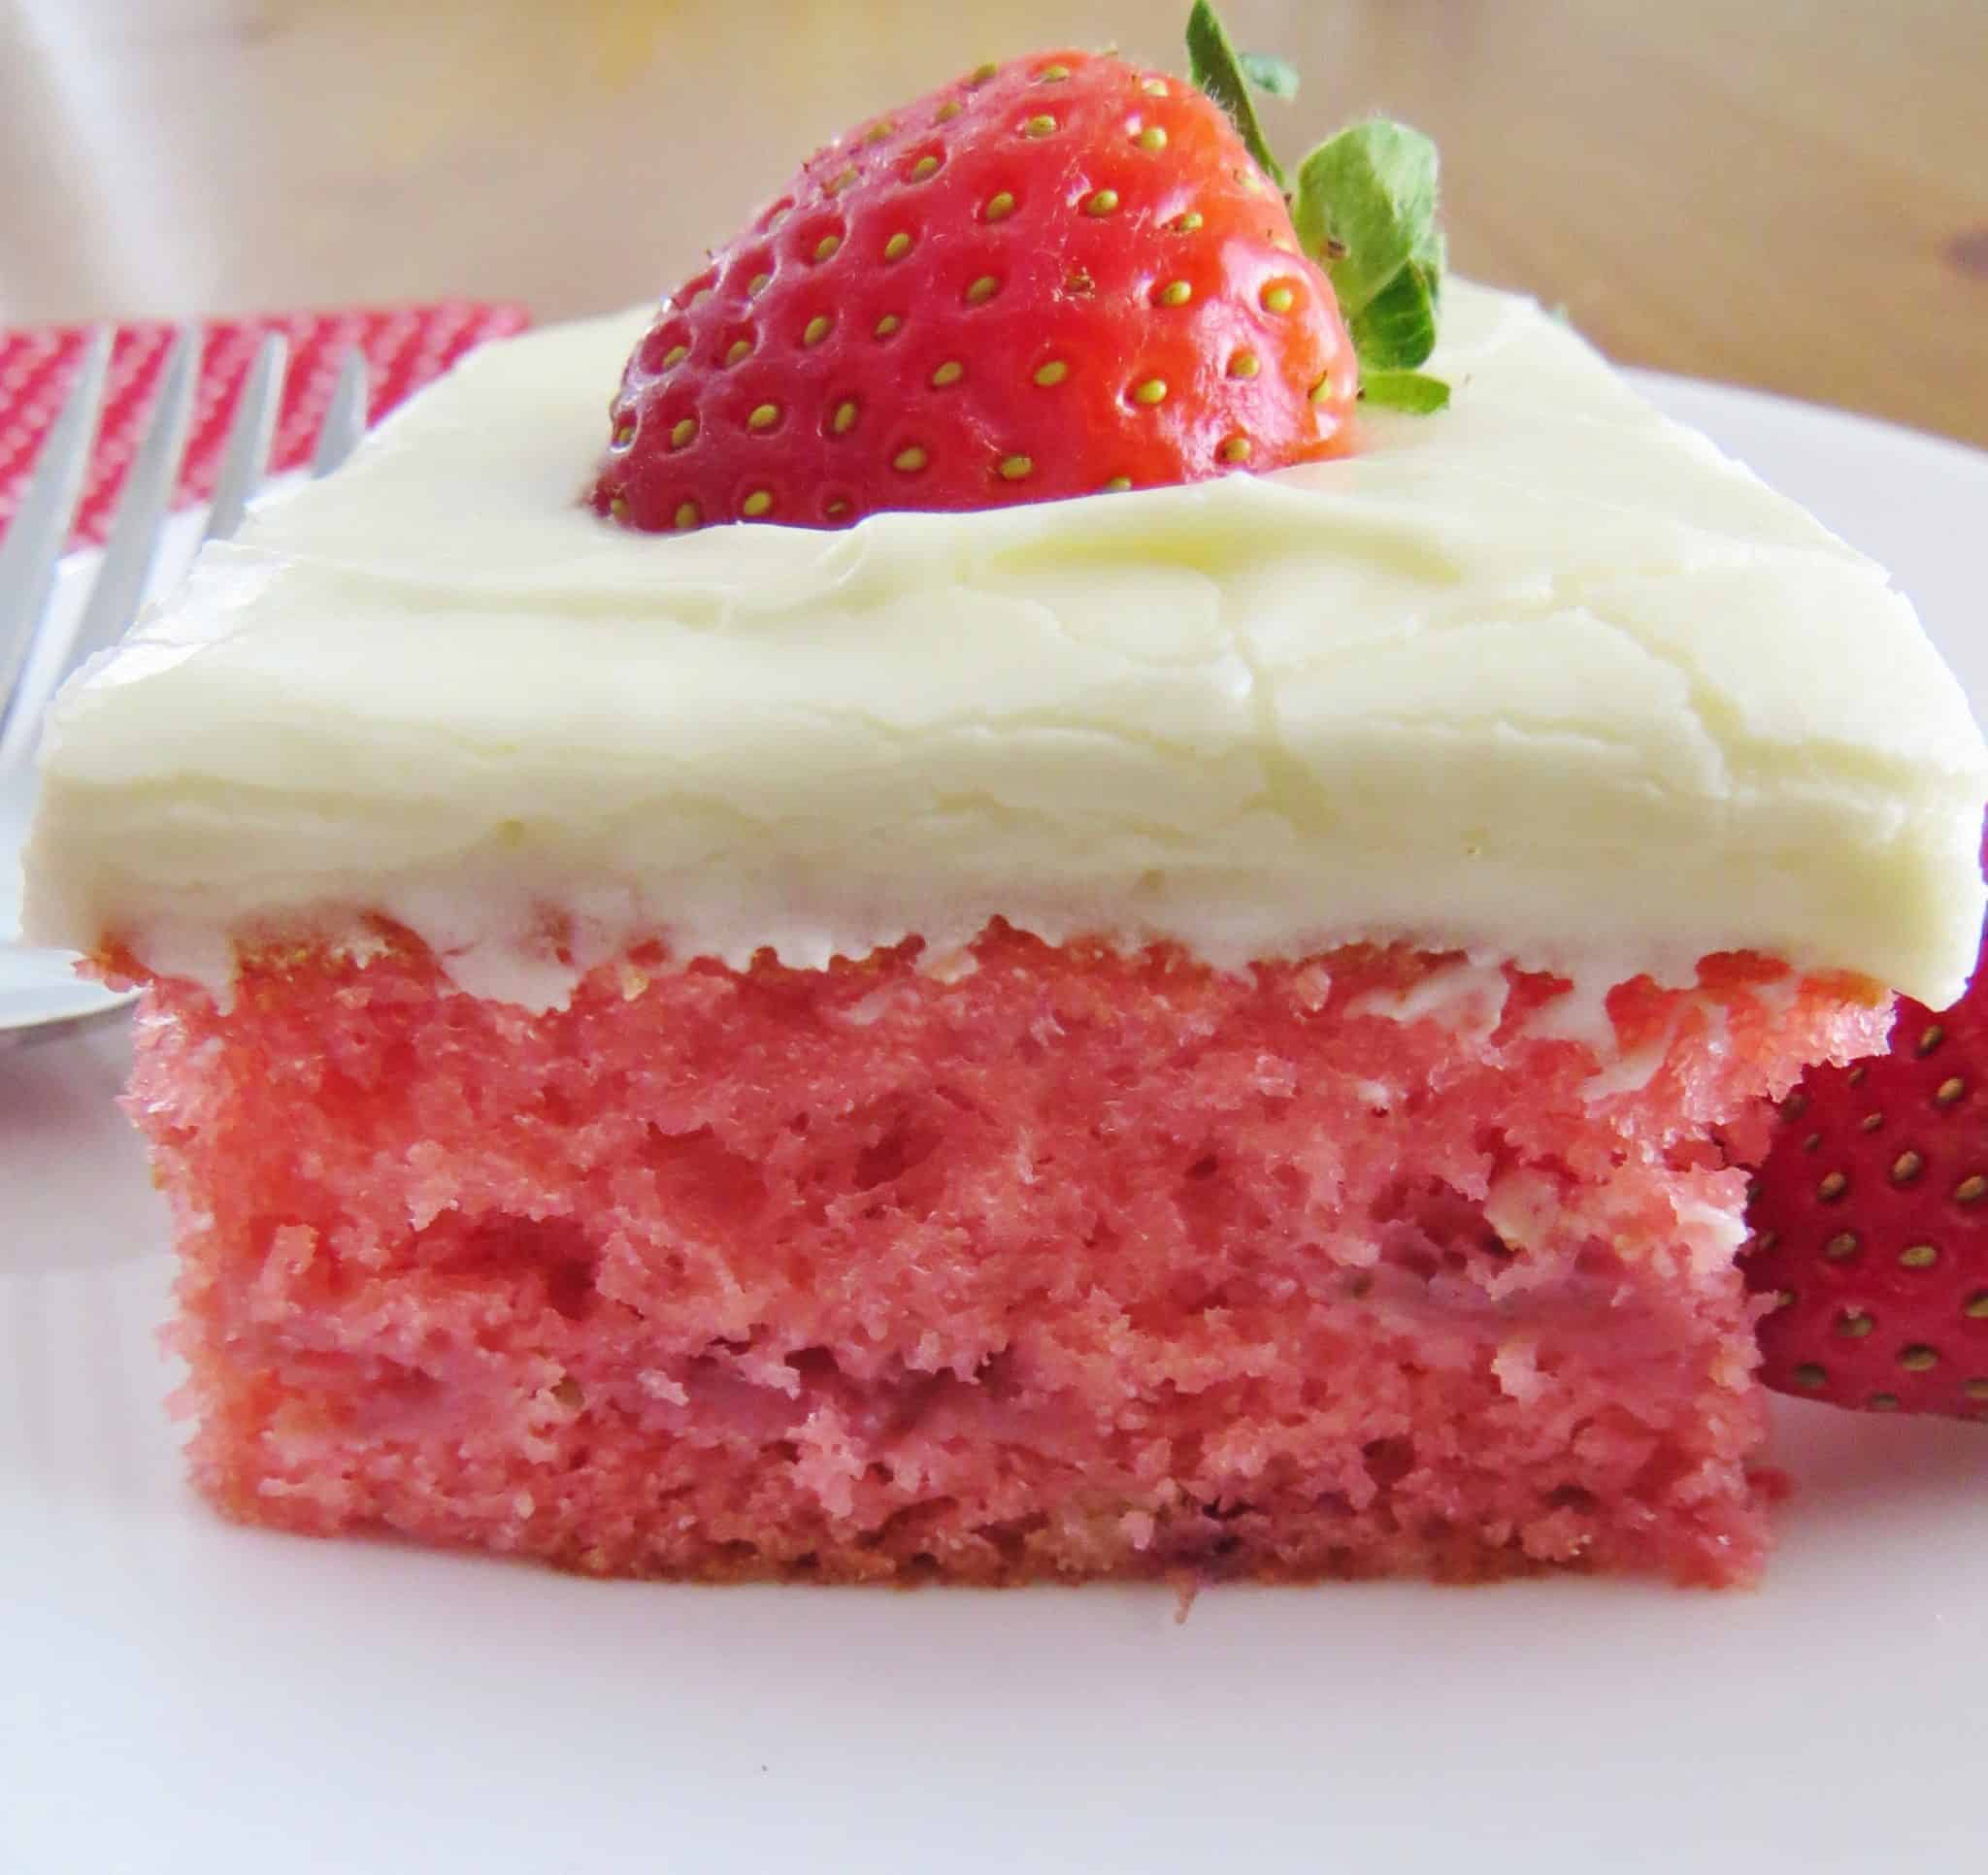 Strawberry Cake With Jello And Whipped Cream